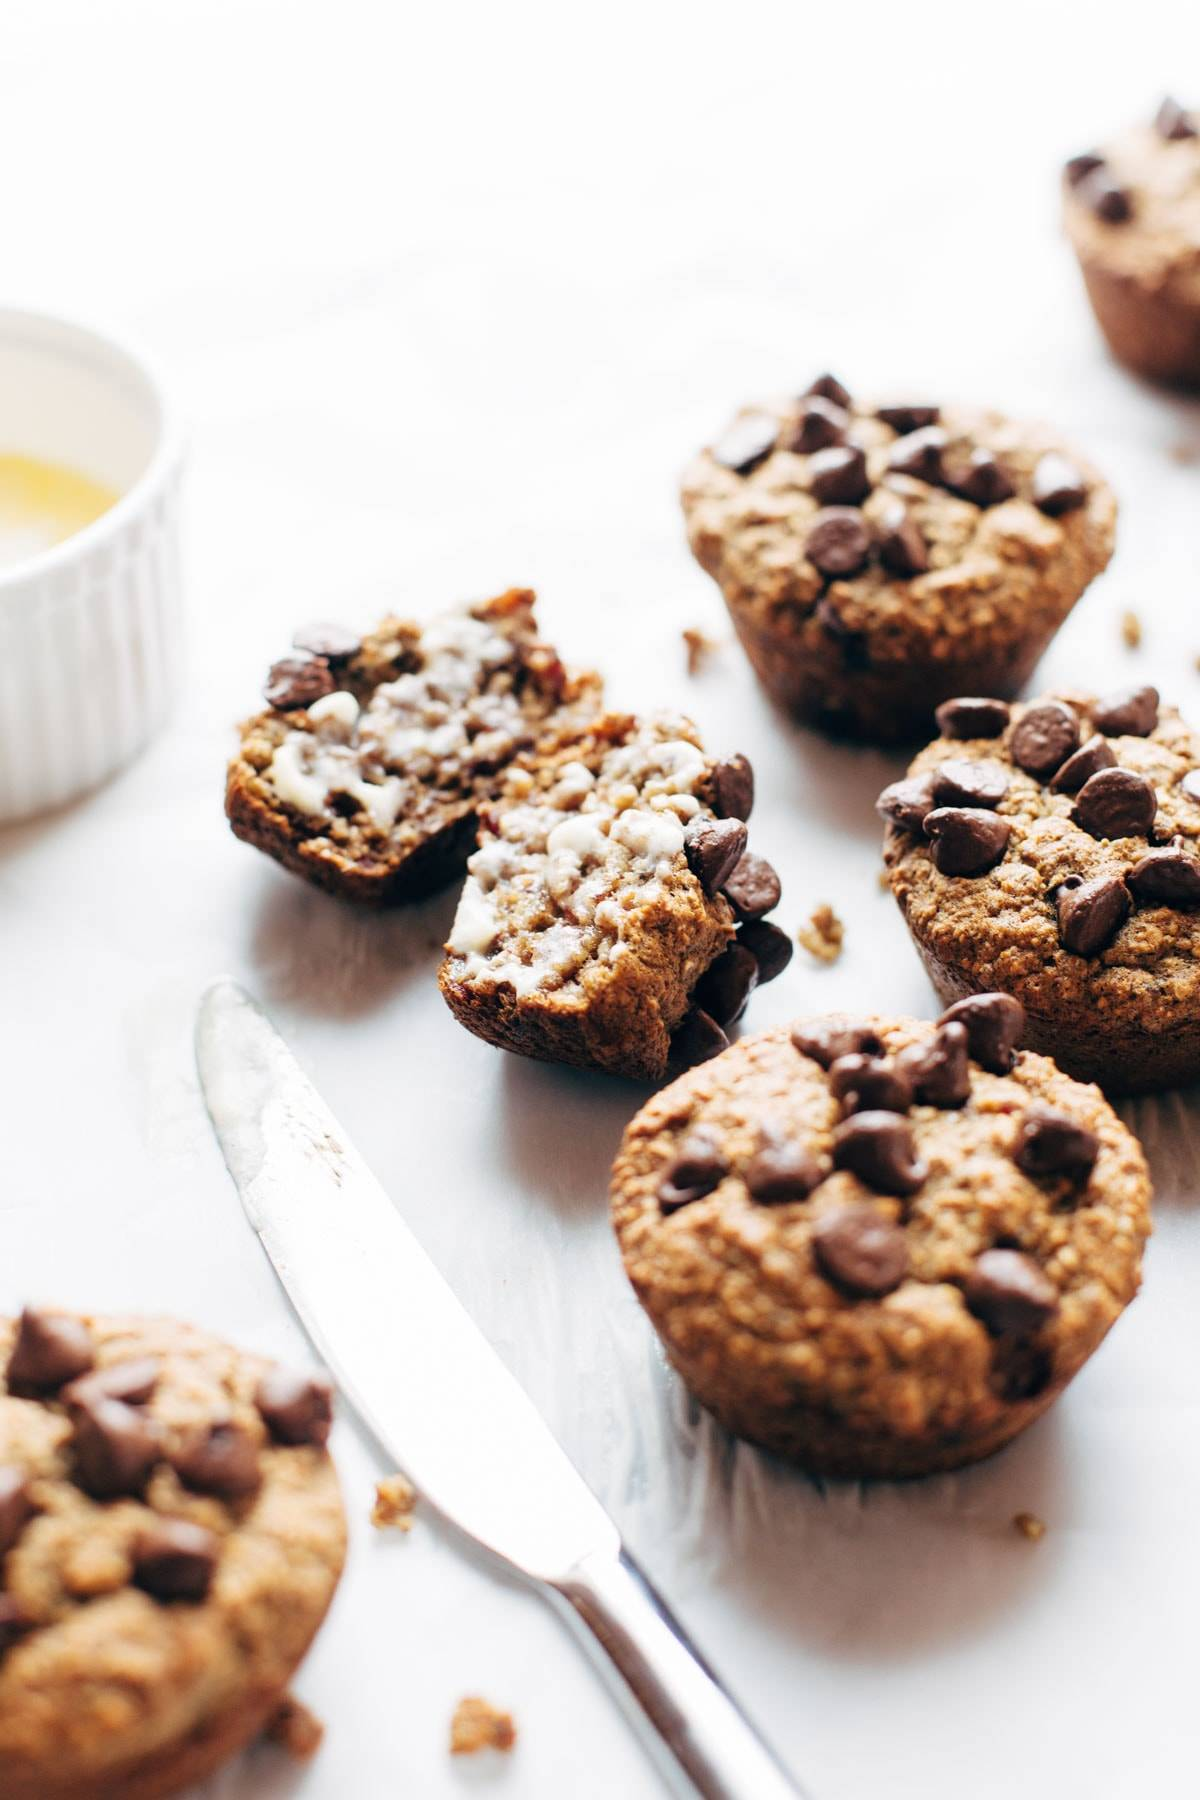 Banana Bread Muffins - made with just 5 wholesome ingredients! no refined sugar, naturally gluten free, and SO yummy! | pinchofyum.com